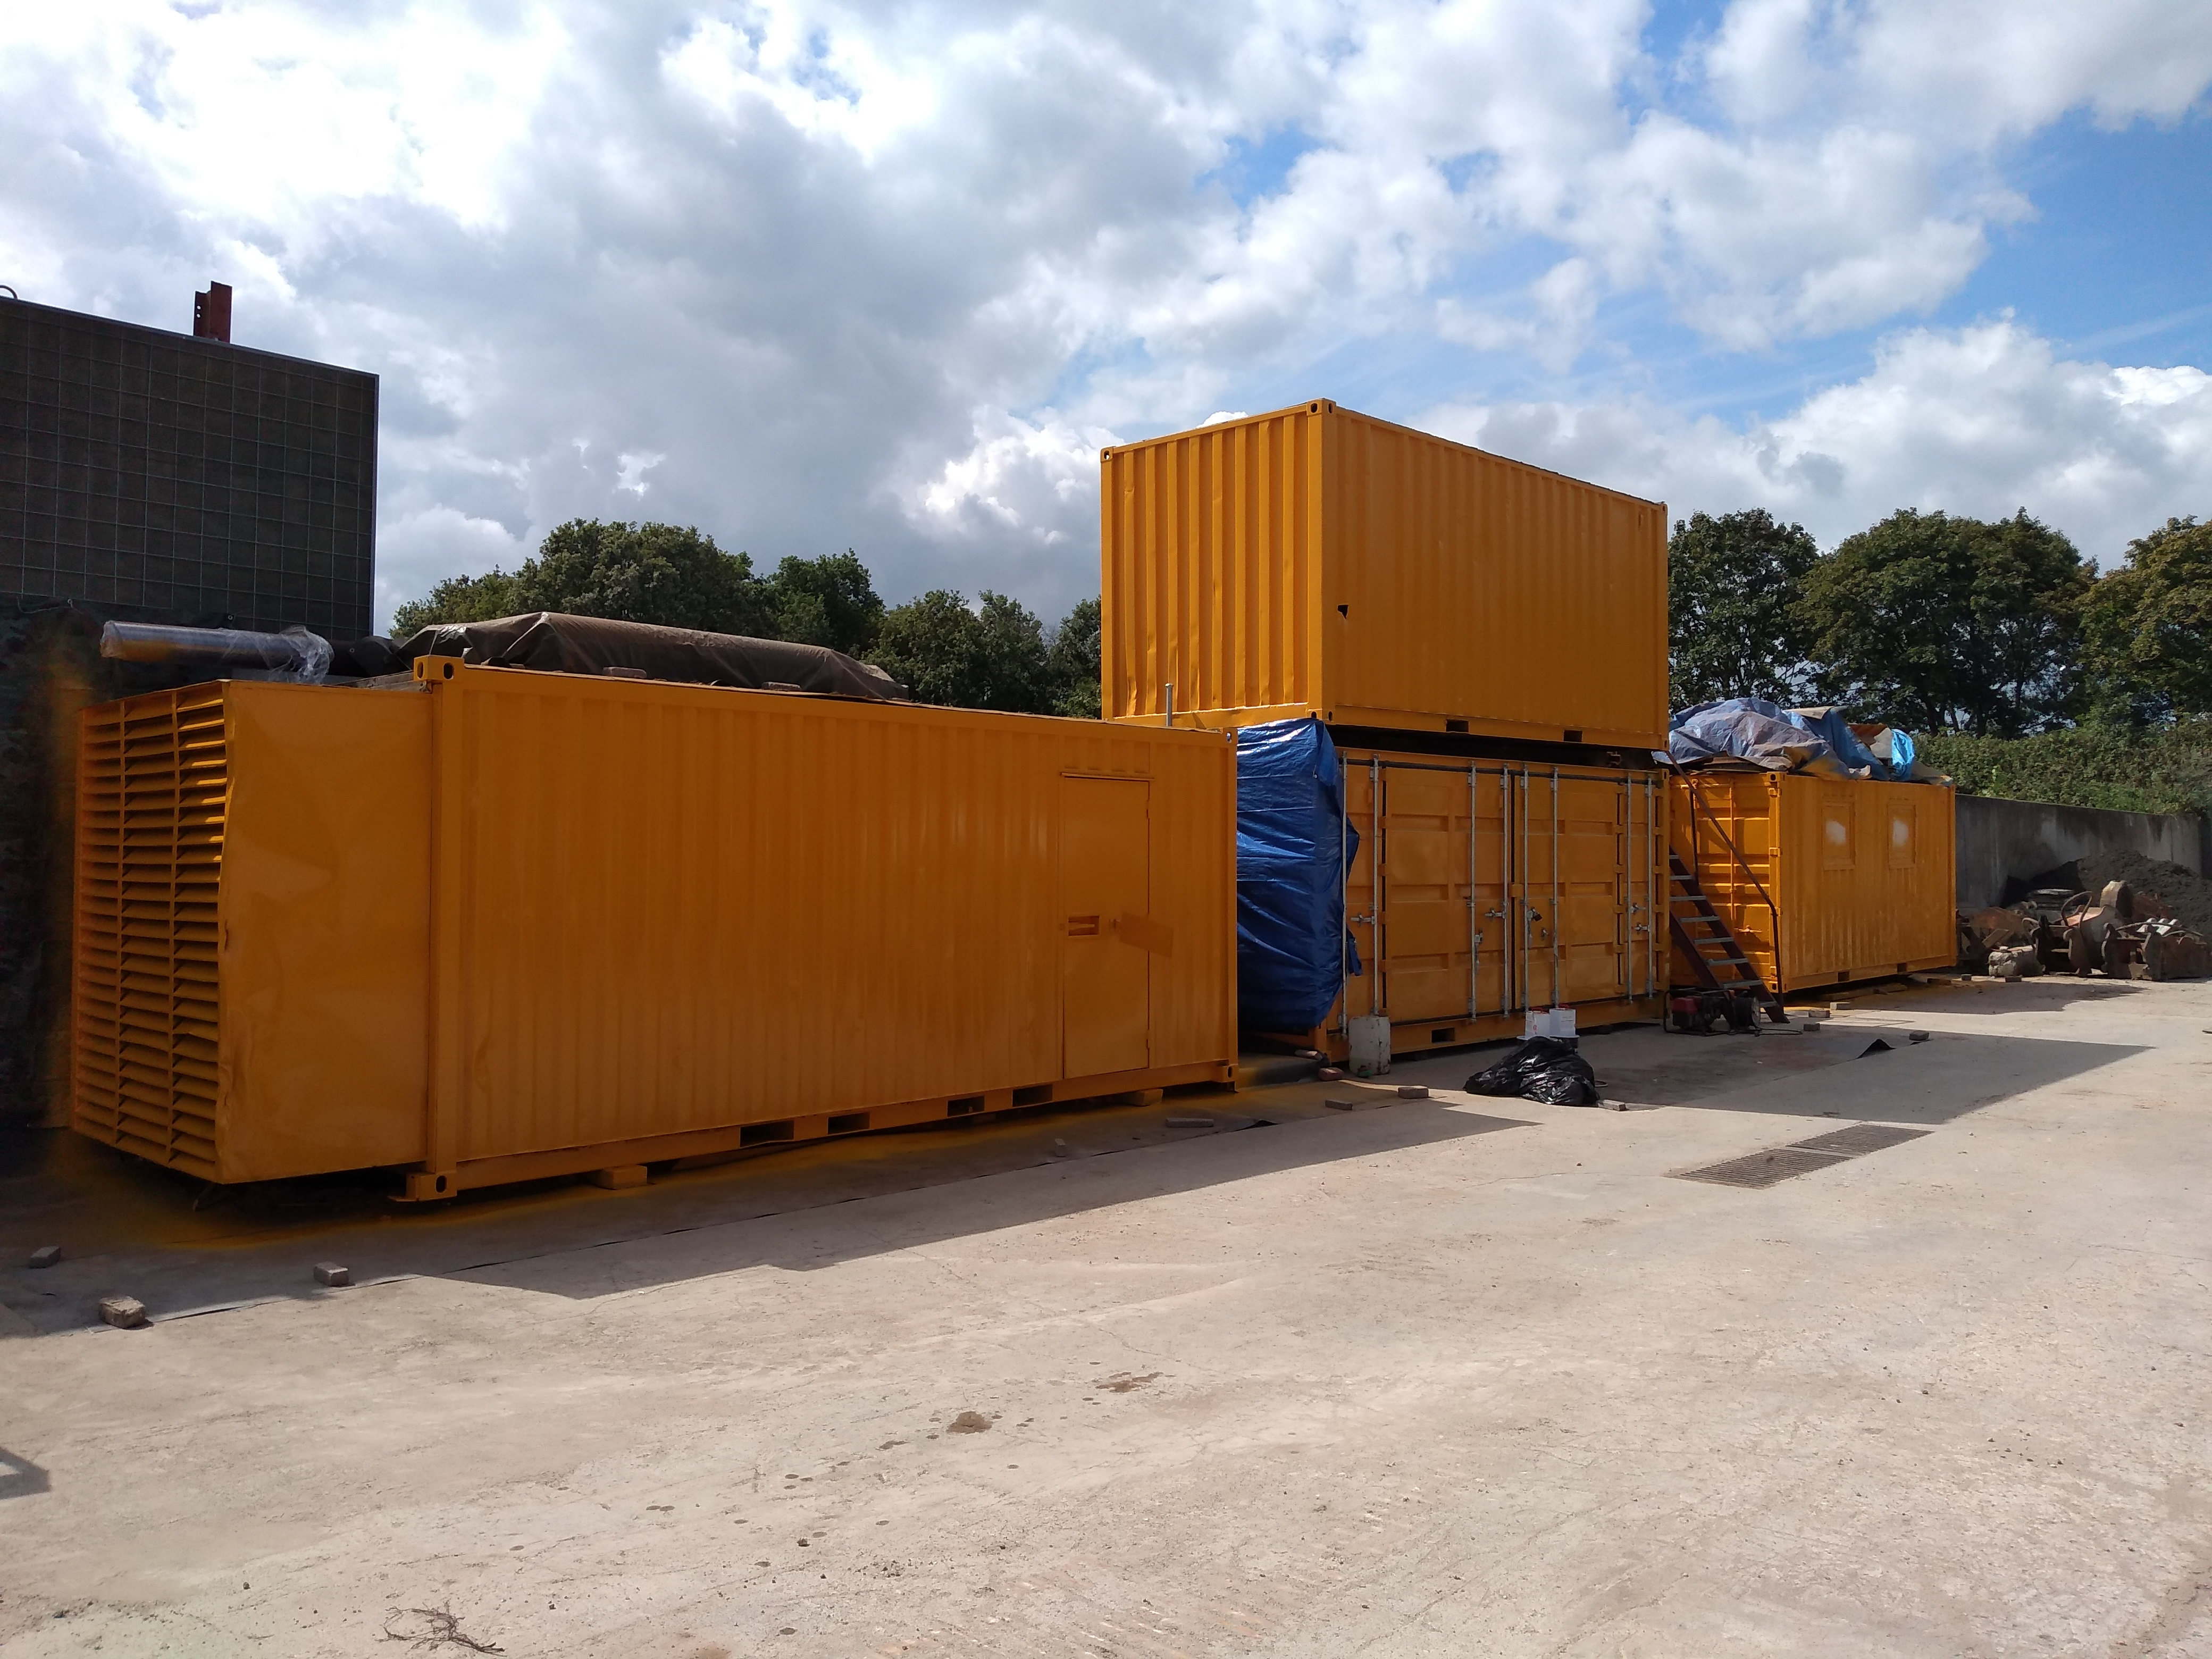 Container HVDH8